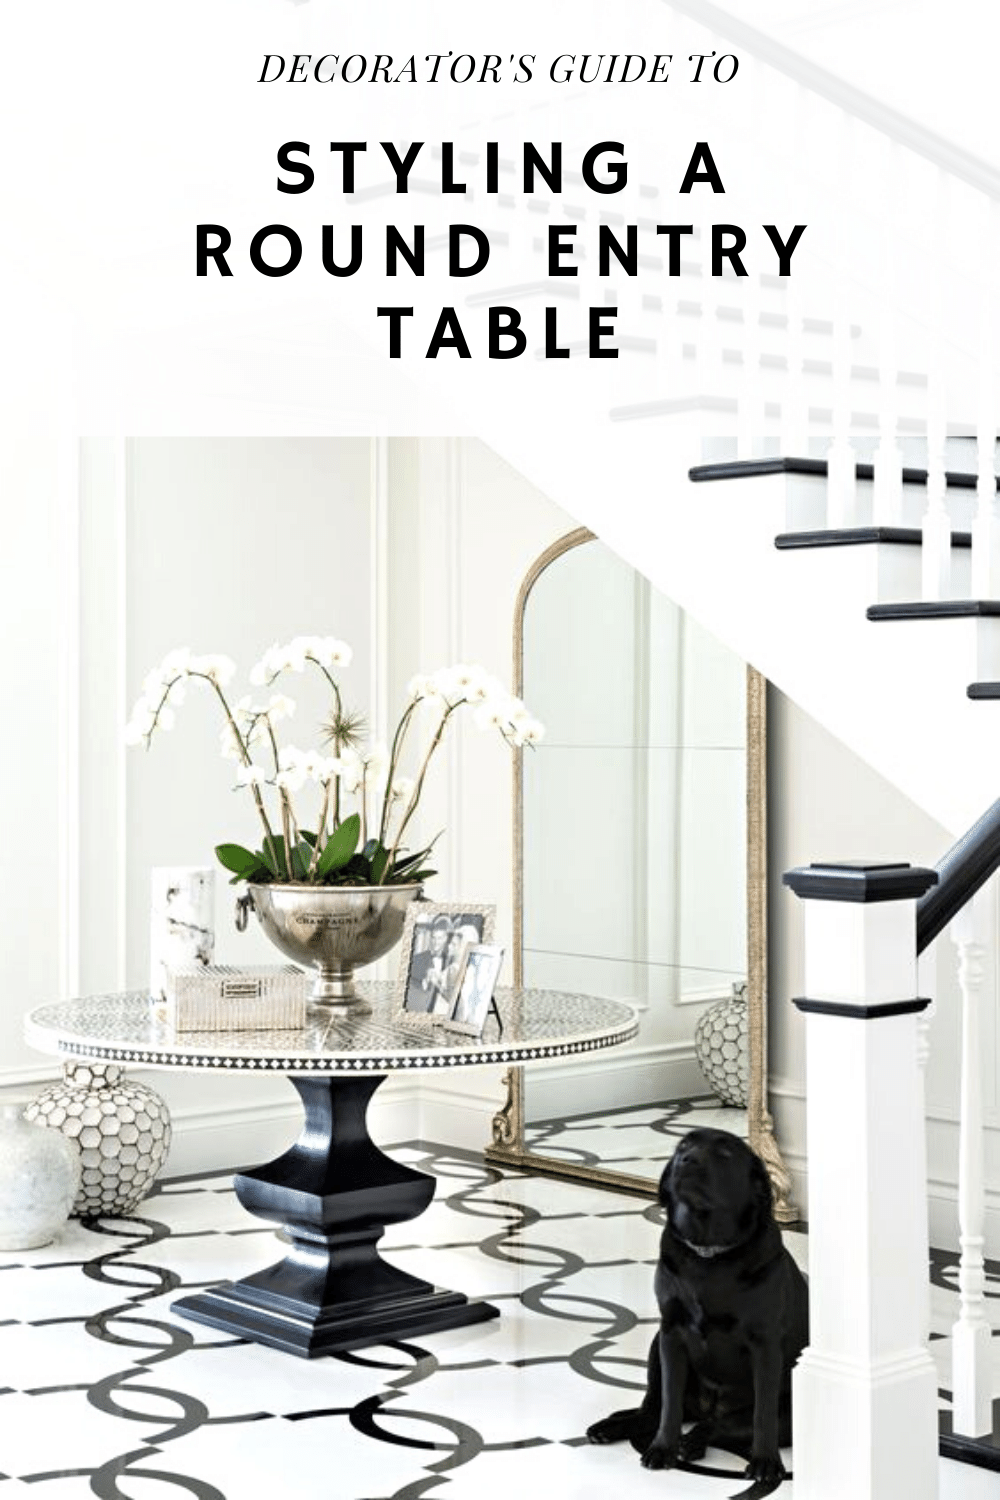 HOW TO STYLE A ROUND ENTRYWAY TABLE